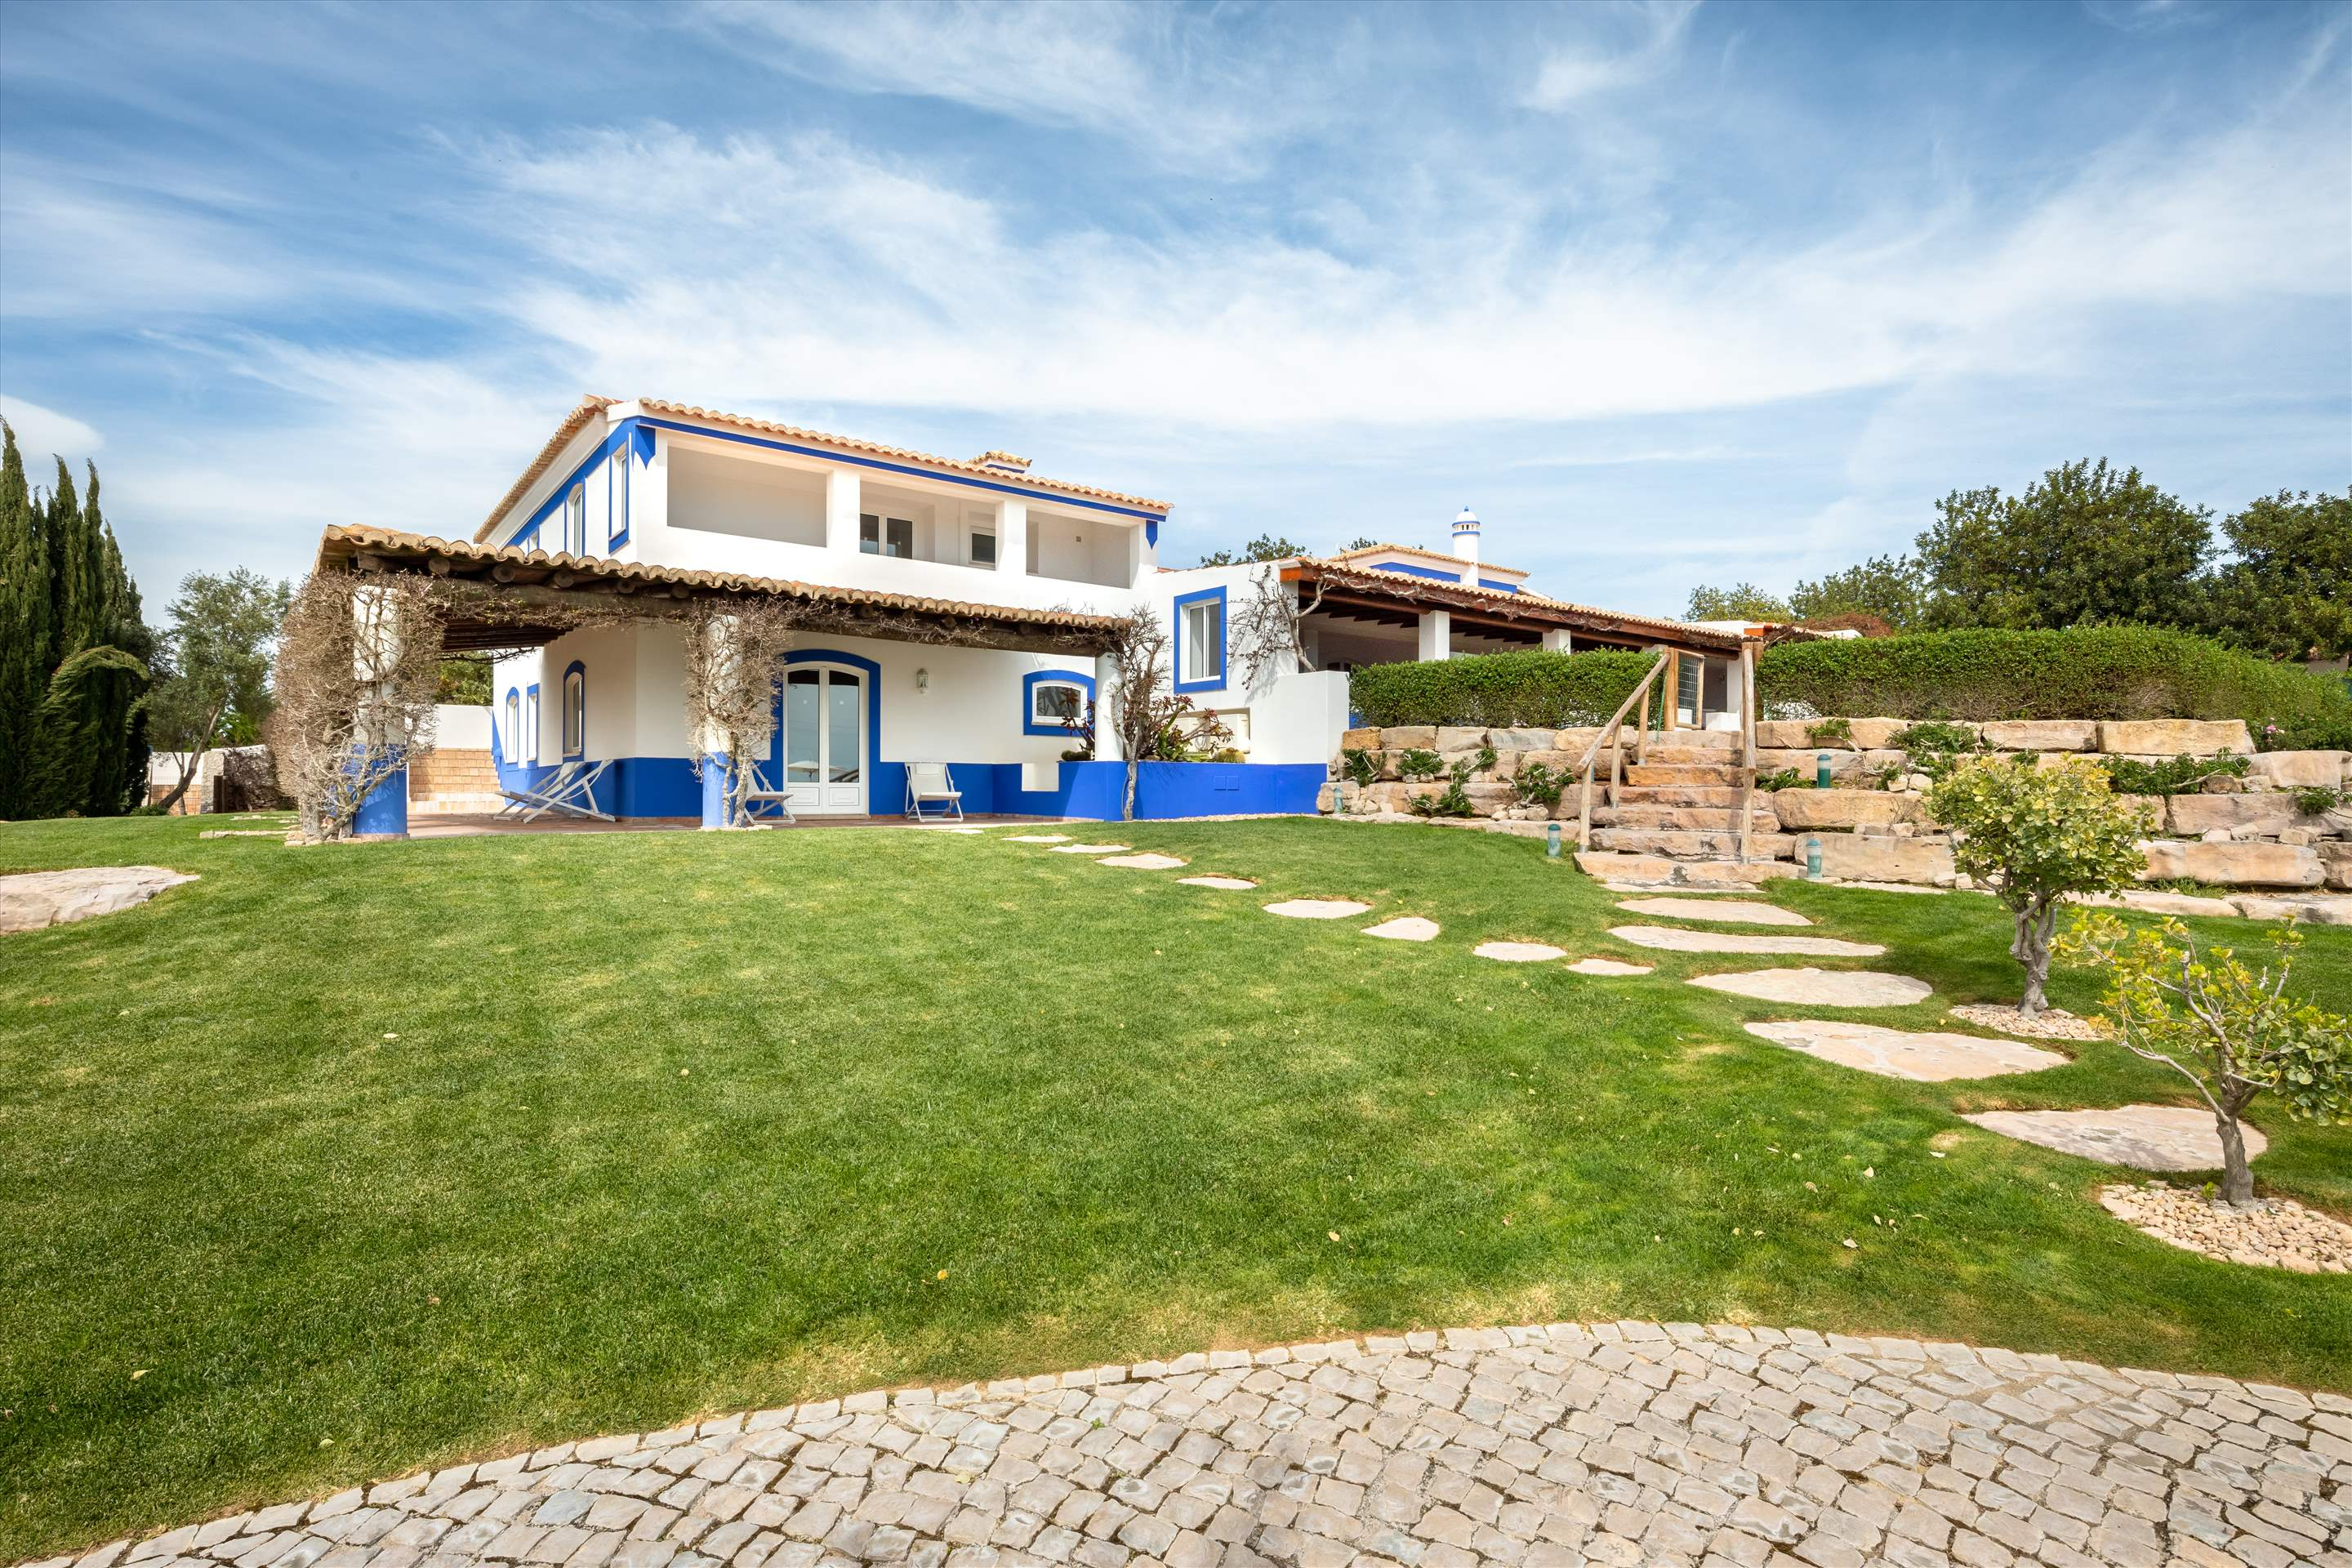 Casa da Montanha, 15-16 persons, 9 bedroom villa in Vilamoura Area, Algarve Photo #5